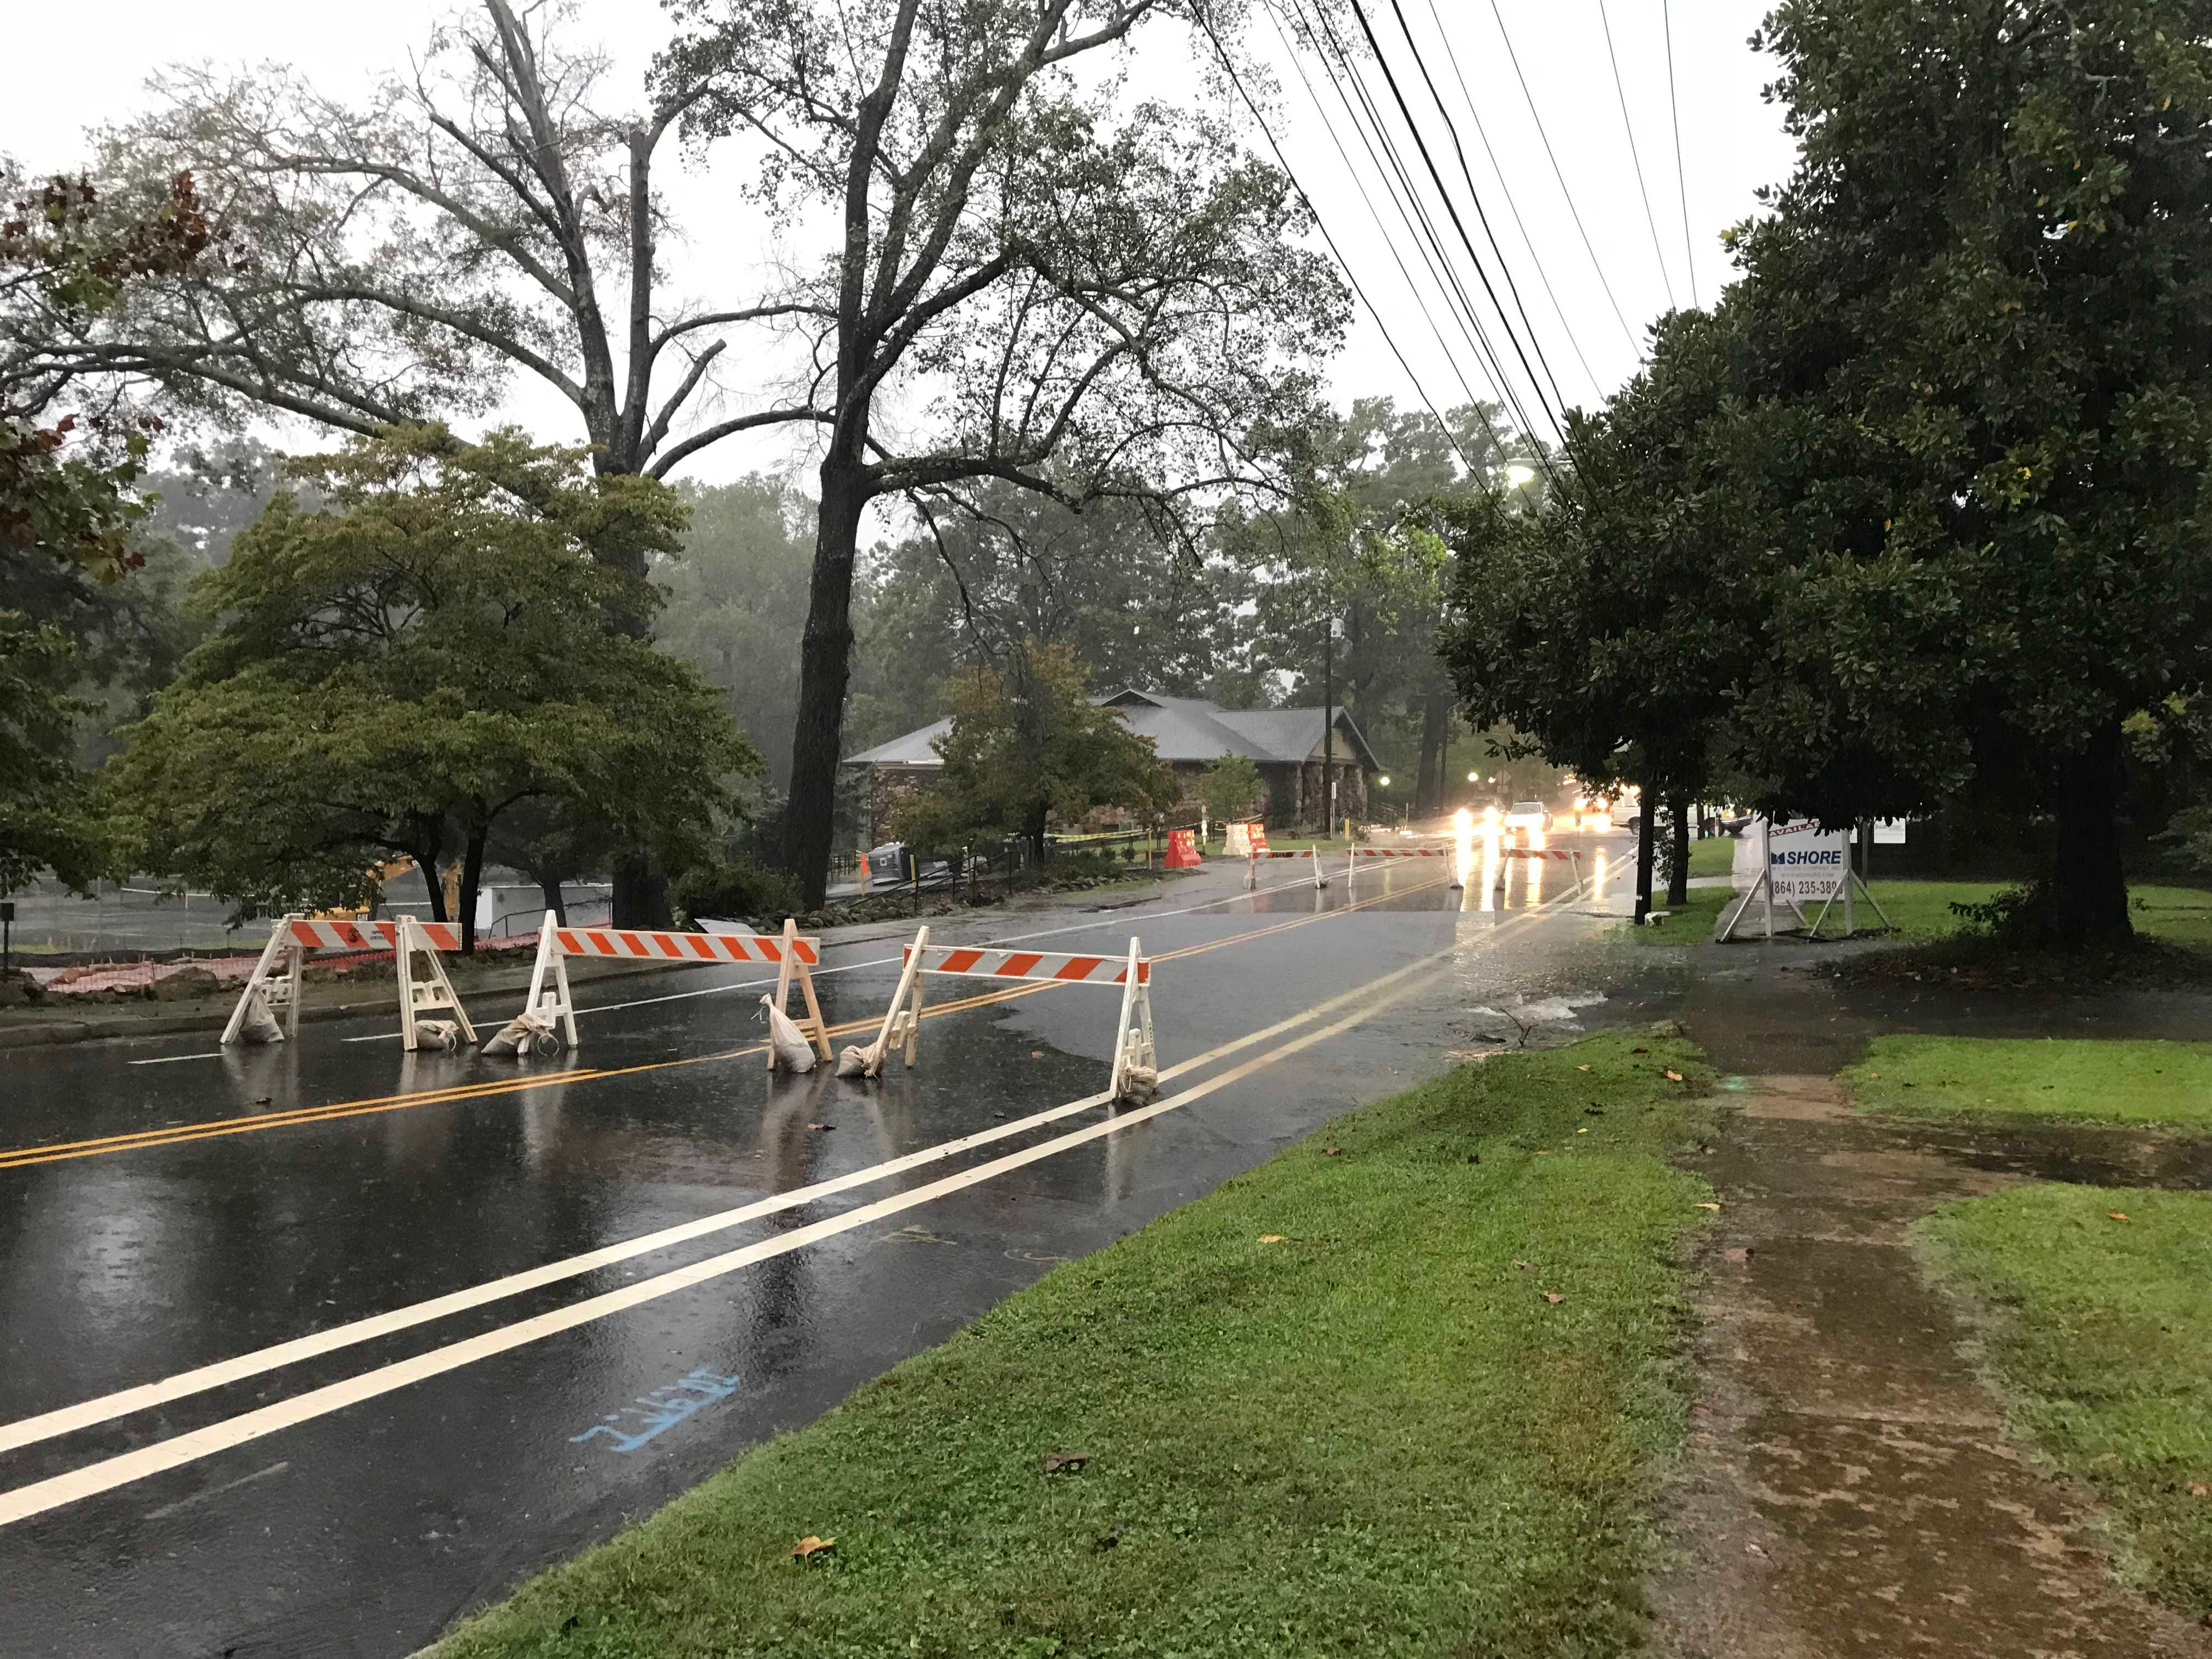 East Park Avenue was shut down because of water logging near McPherson Park in Greenville on Thursday, Oct. 11, 2018, as heavy rain fell in the Upstate because of Tropical Storm Michael.